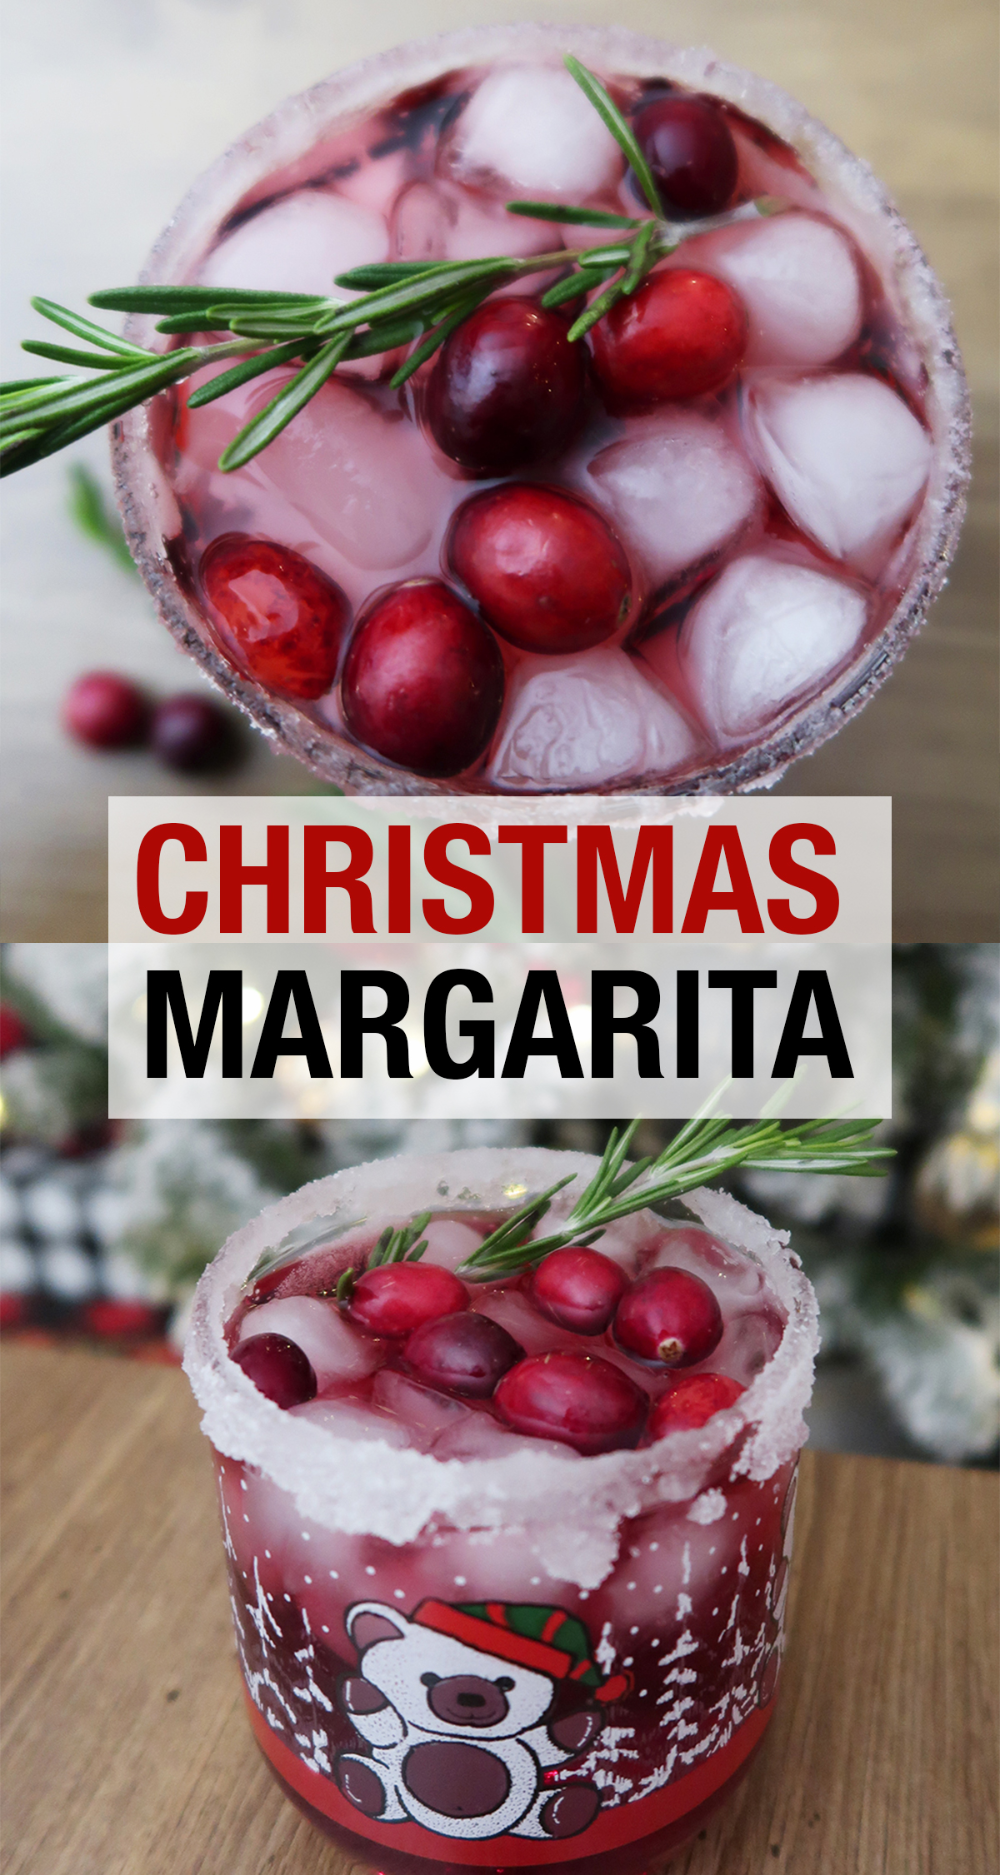 Christmas Margarita - Weekend Craft #christmasmargarita A festive twist on the classic margarita with cranberry and pomegranate. A recipe for a Christmas Margarita. Perfect to make a glass or a whole pitcher for a Christmas Party. #ChristmasCocktail #cocktails #ChristmasSpirit #ChristmasParty